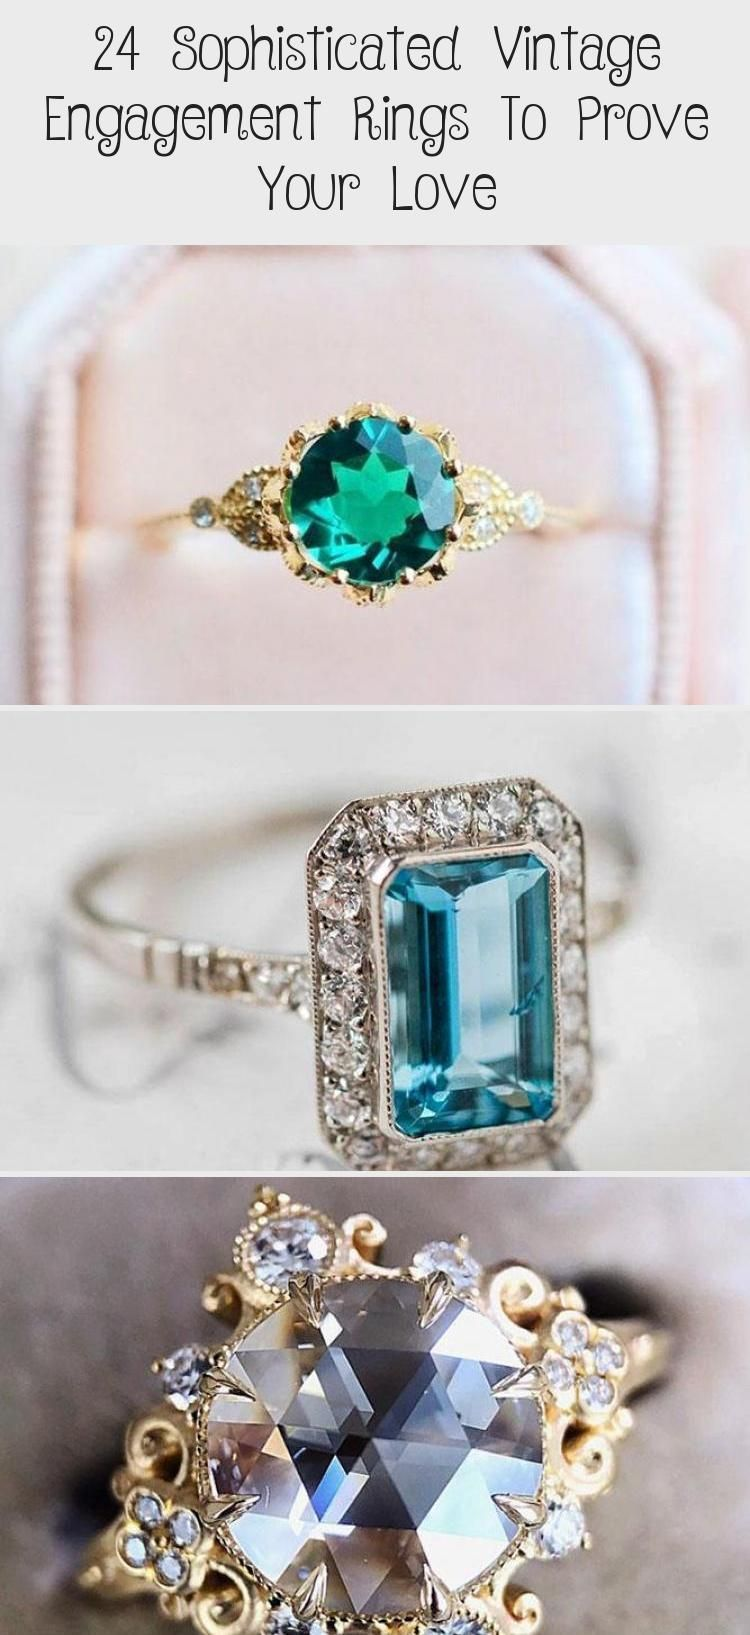 Sophisticated Vintage Engagement Rings To Prove Your Love ★ #engagementring #p...,  #Engageme...,  #Engageme #Engagement #engagementring #howtomakeaweddingplannerbinder #Love #Prove #Rings #Sophisticated #Vintage